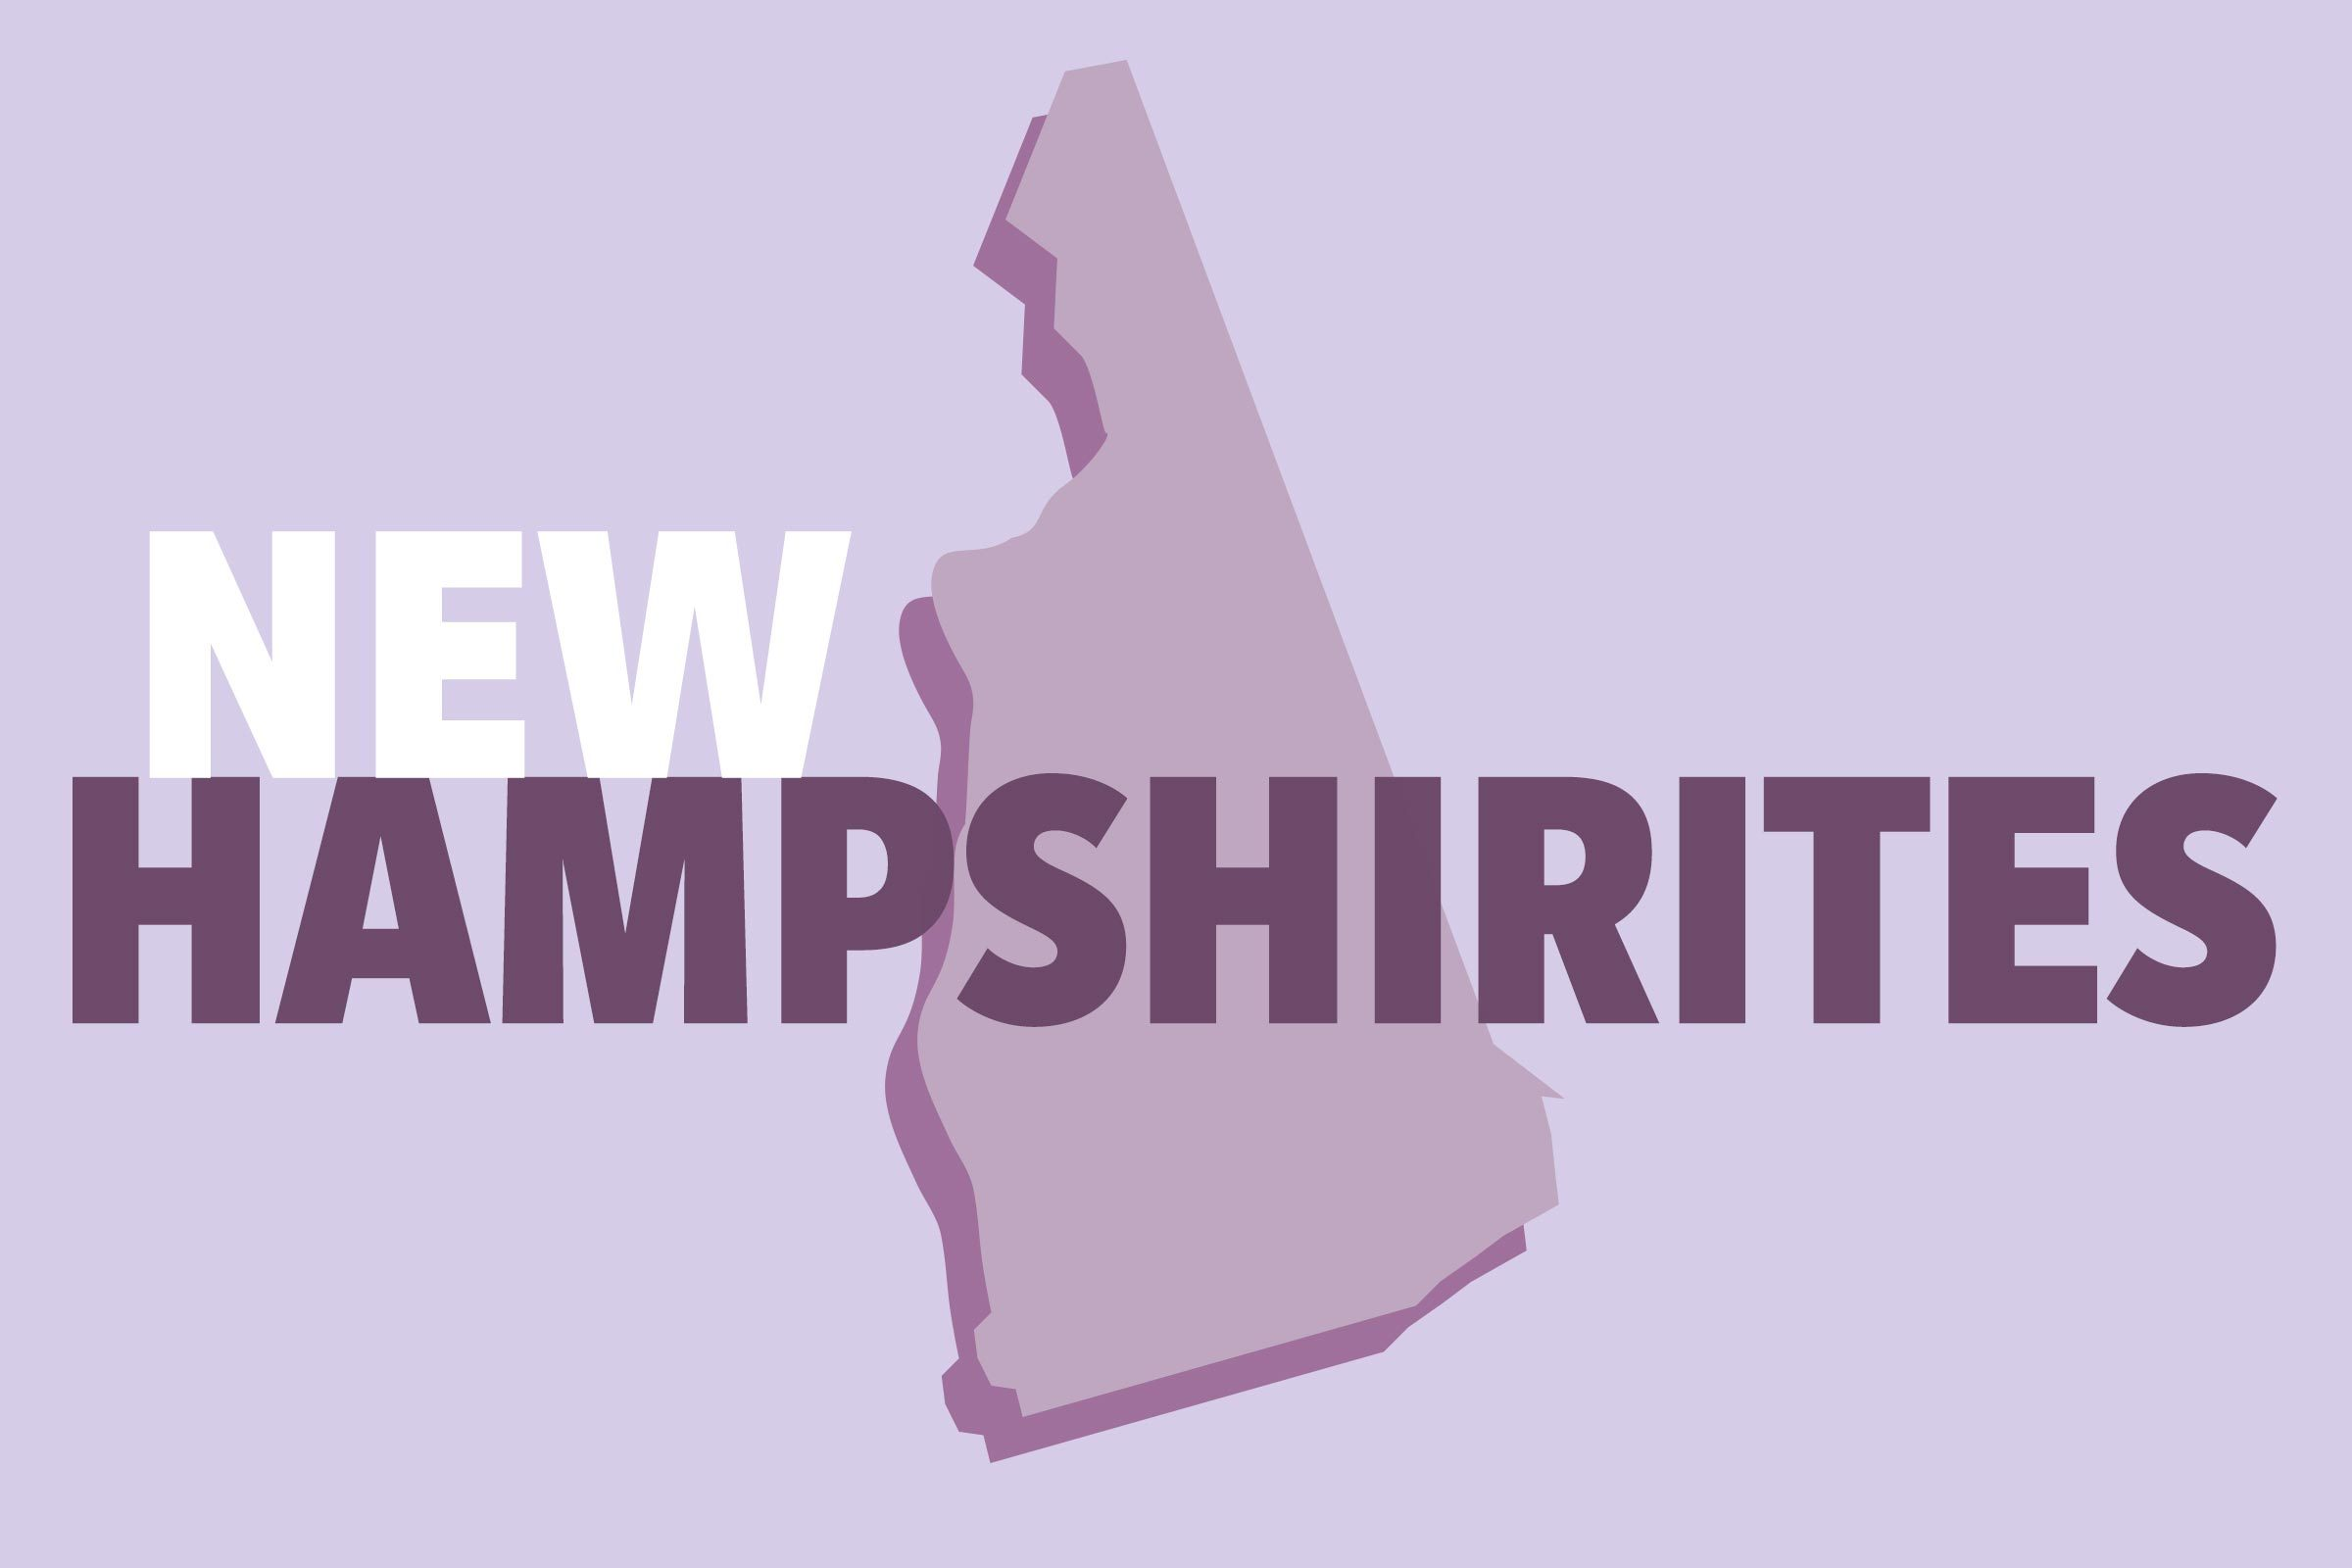 New Hampshirites